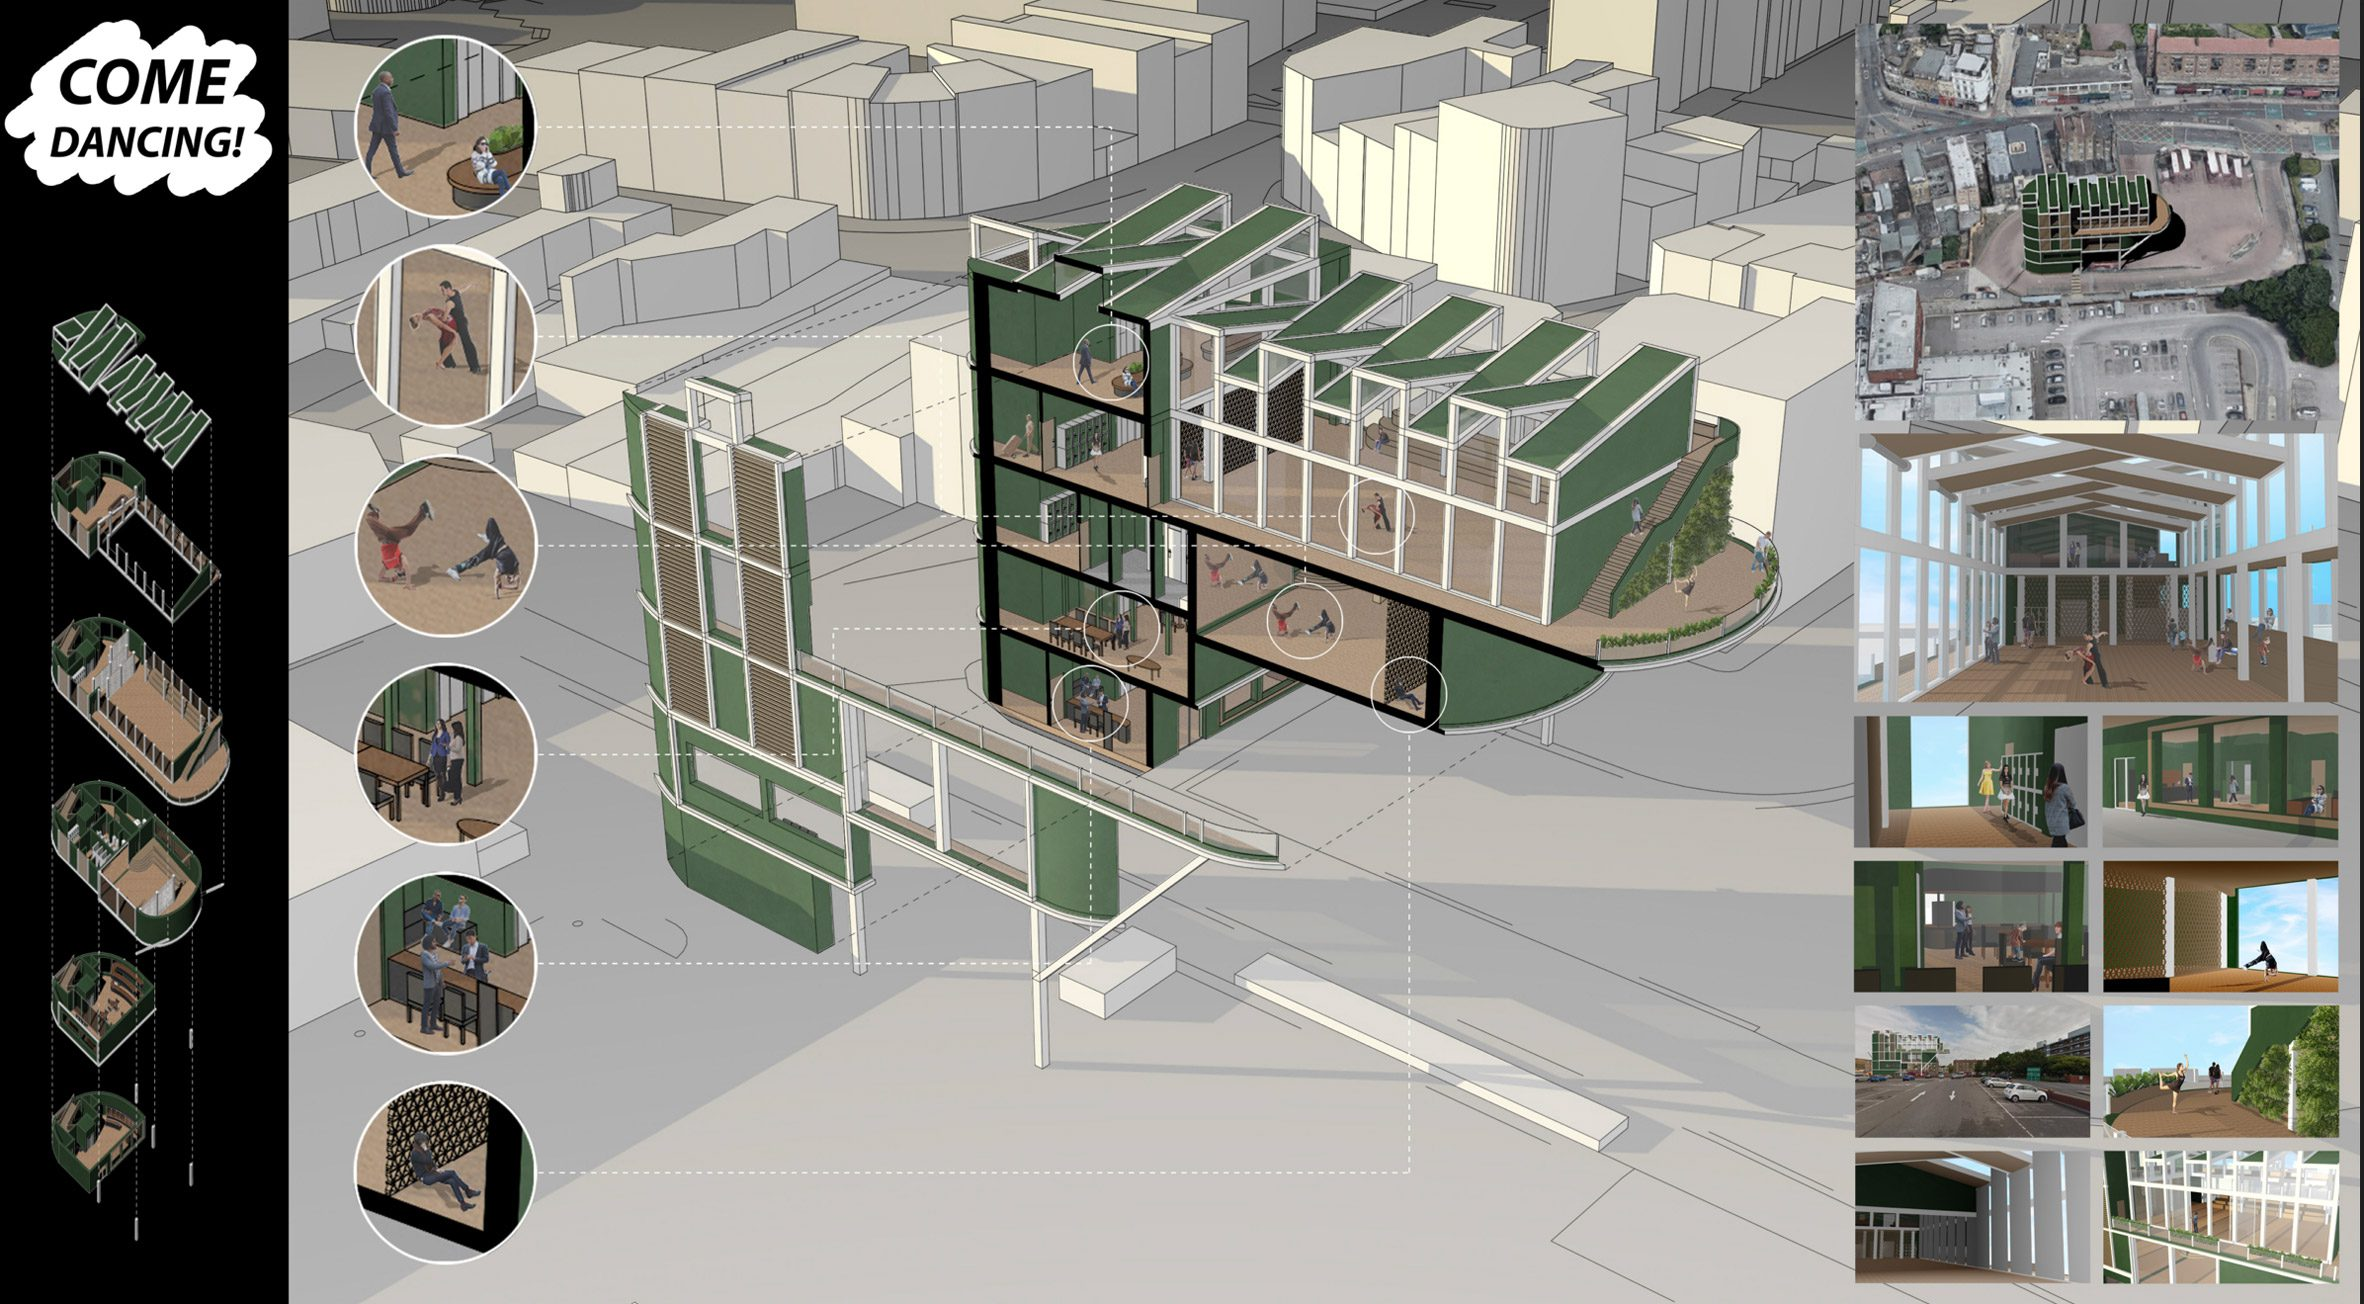 A visualisation of a dance studio in Peckham